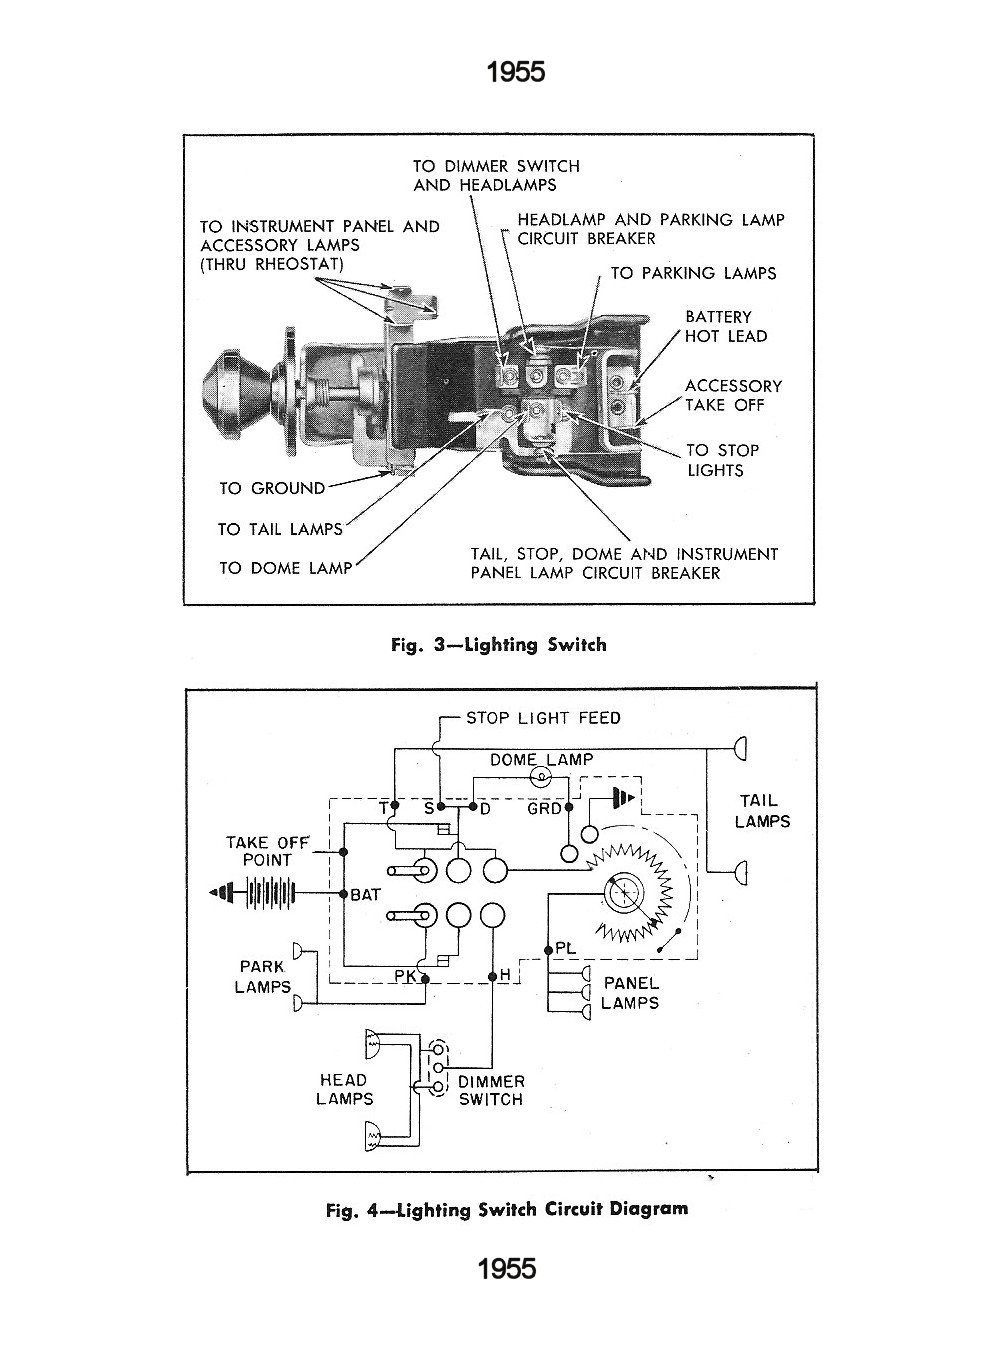 55csm1204a chevy wiring diagrams 1957 bel air wiring diagram at gsmx.co